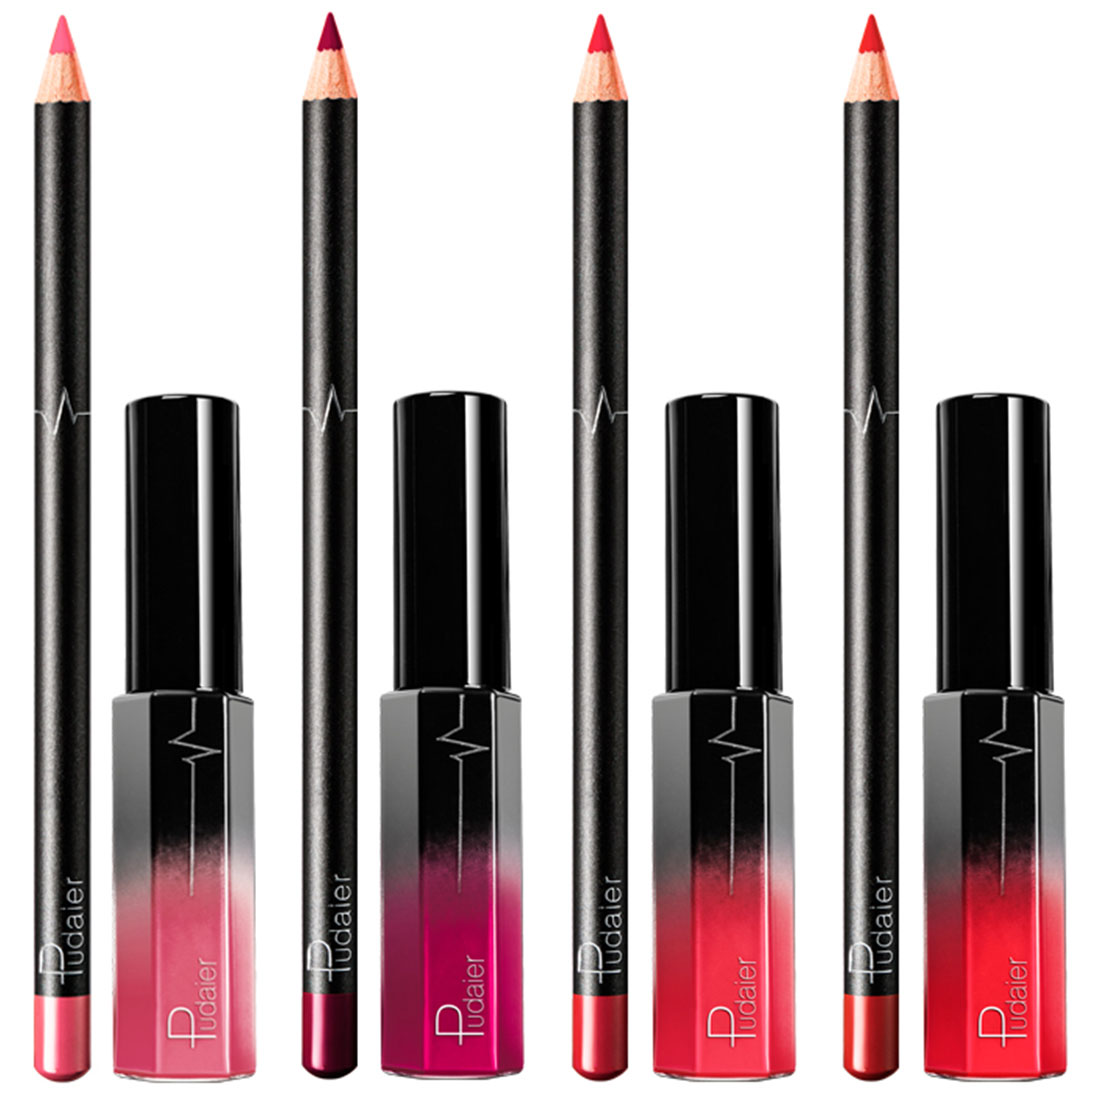 <font><b>Matte</b></font> liquid <font><b>lip</b></font> <font><b>gloss</b></font> <font><b>cosmetic</b></font> <font><b>lipstick</b></font> <font><b>set</b></font> waterproof long-lasting <font><b>lipstick</b></font> <font><b>lip</b></font> liner combination <font><b>lip</b></font> tool image